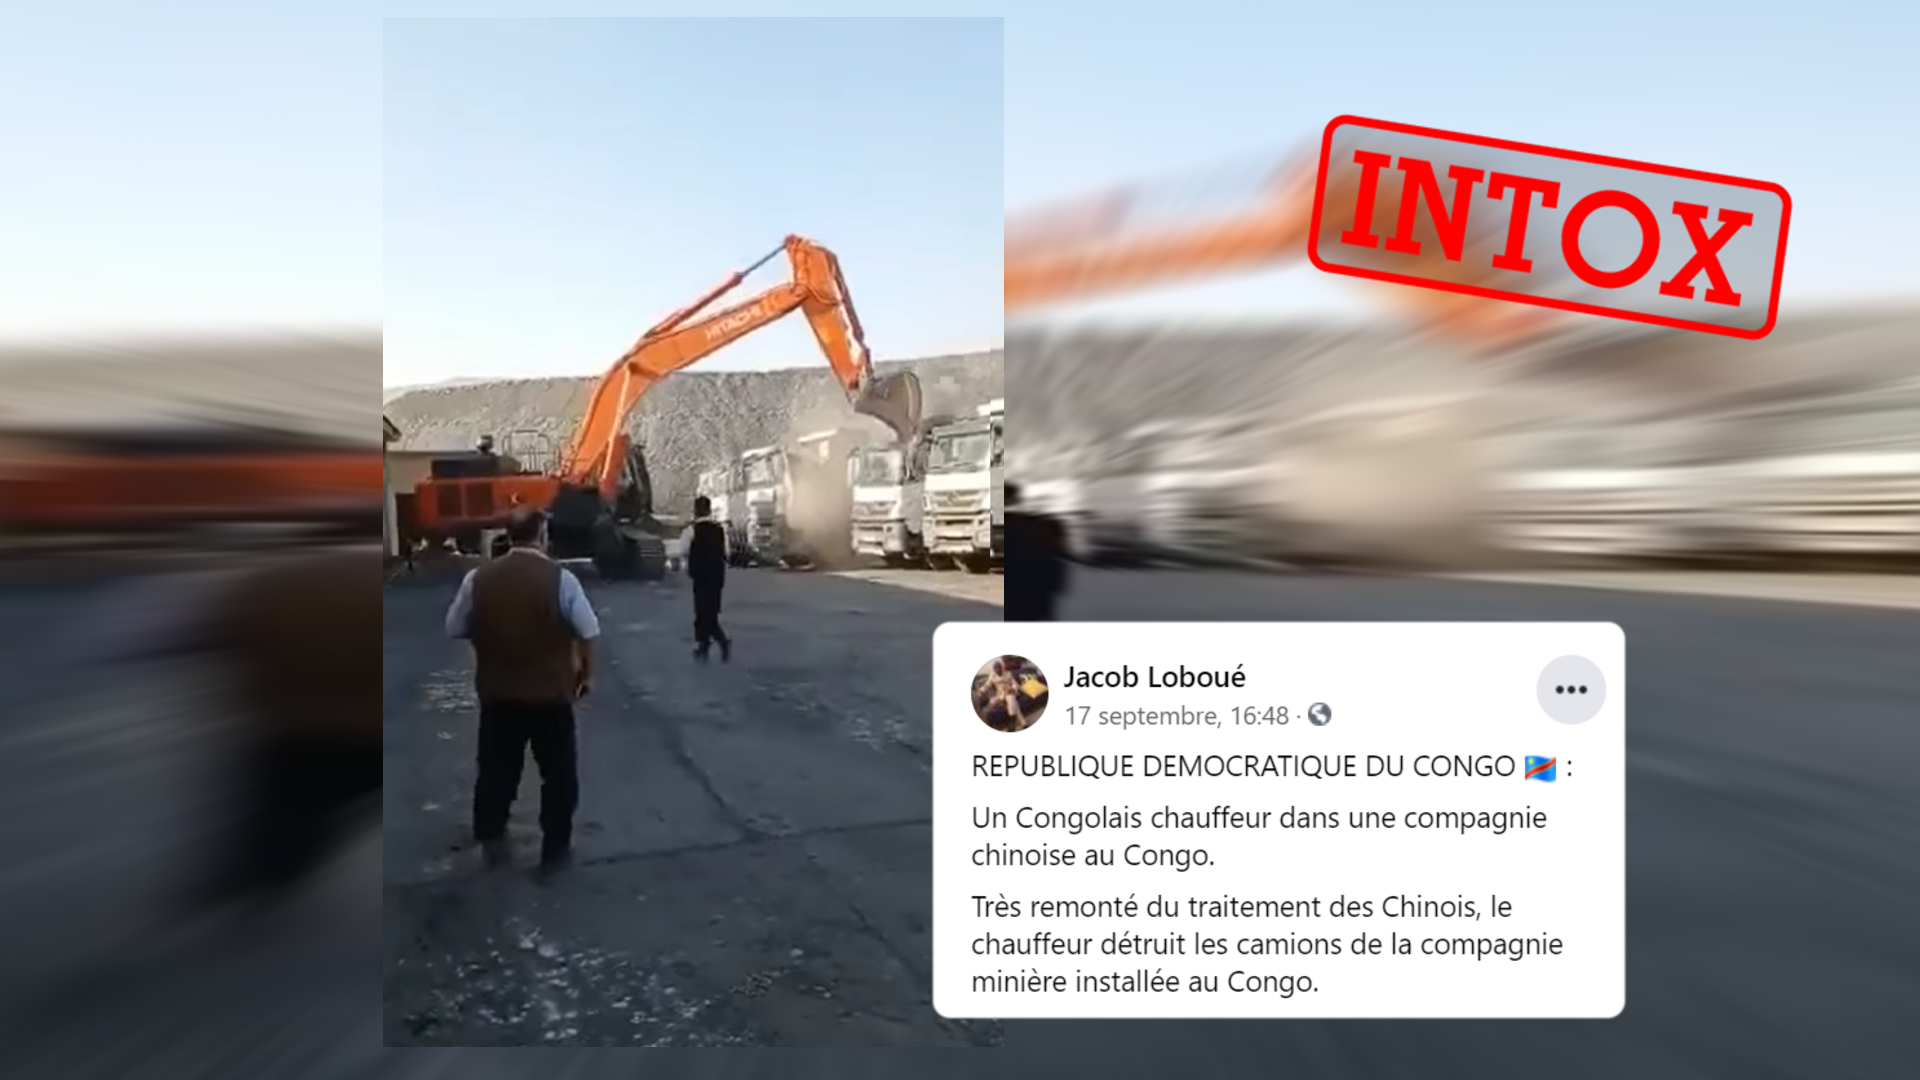 intox-camions-chinois-congo